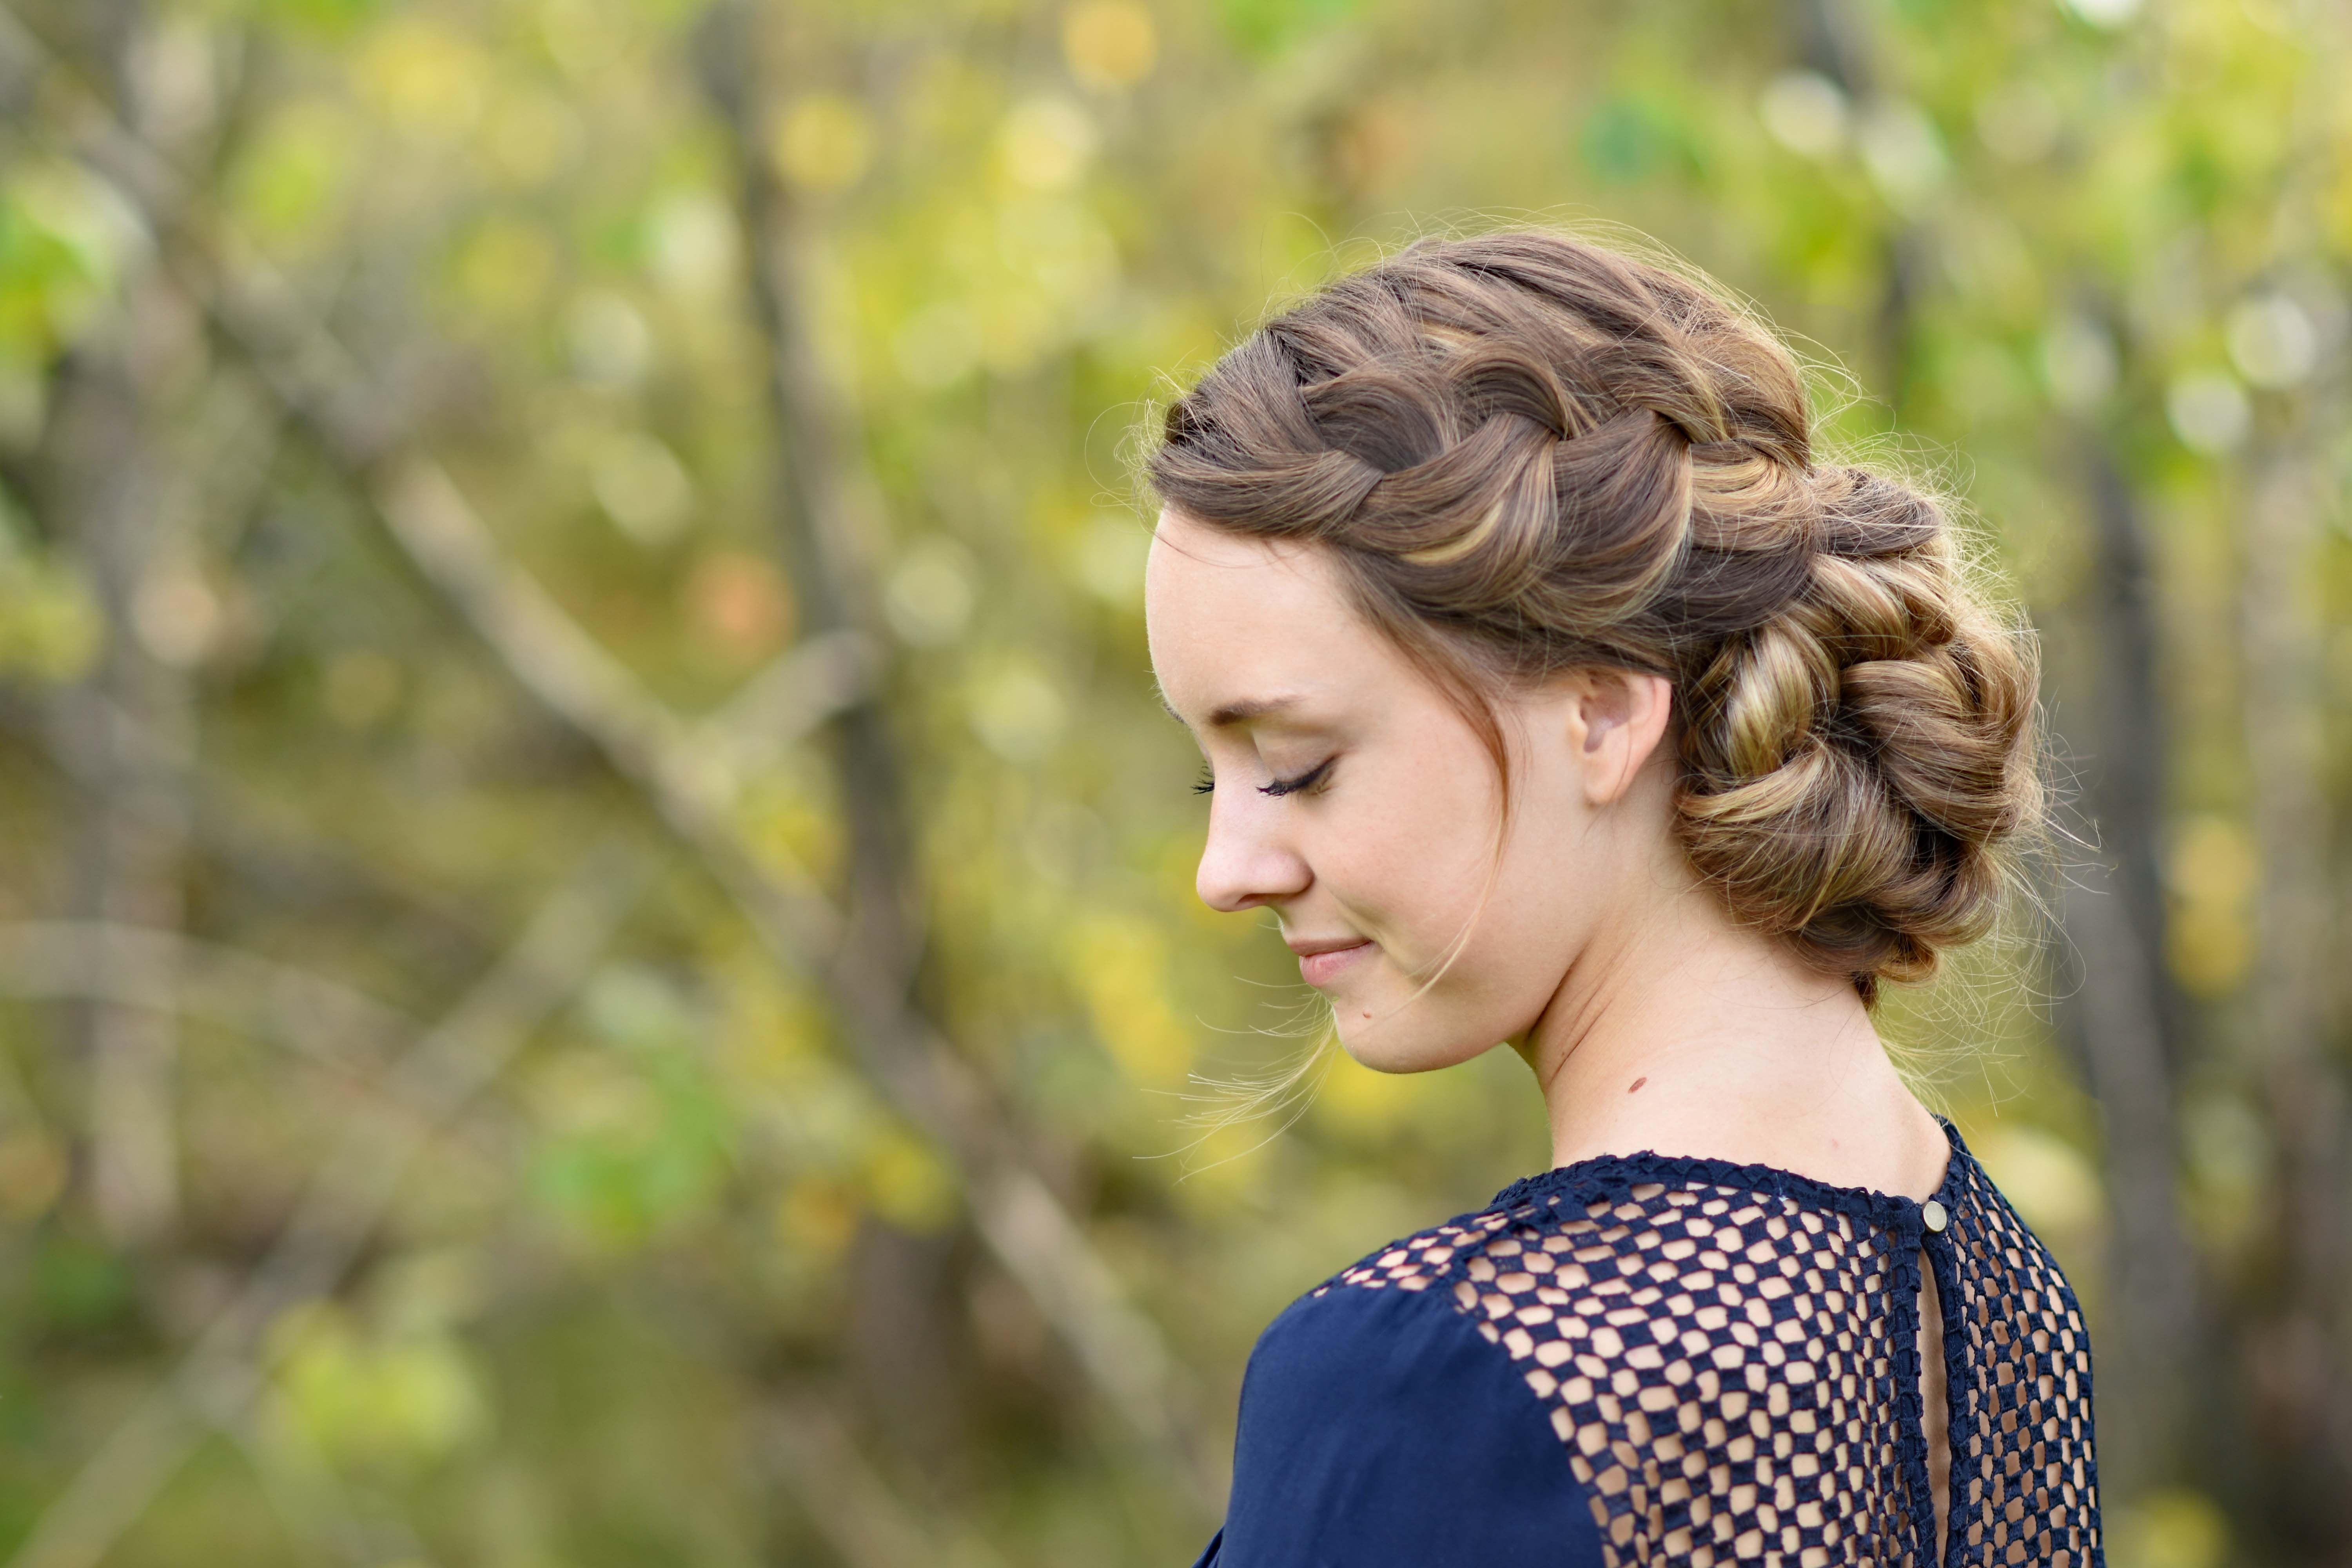 franch hair style braid updo hairstyles 4295